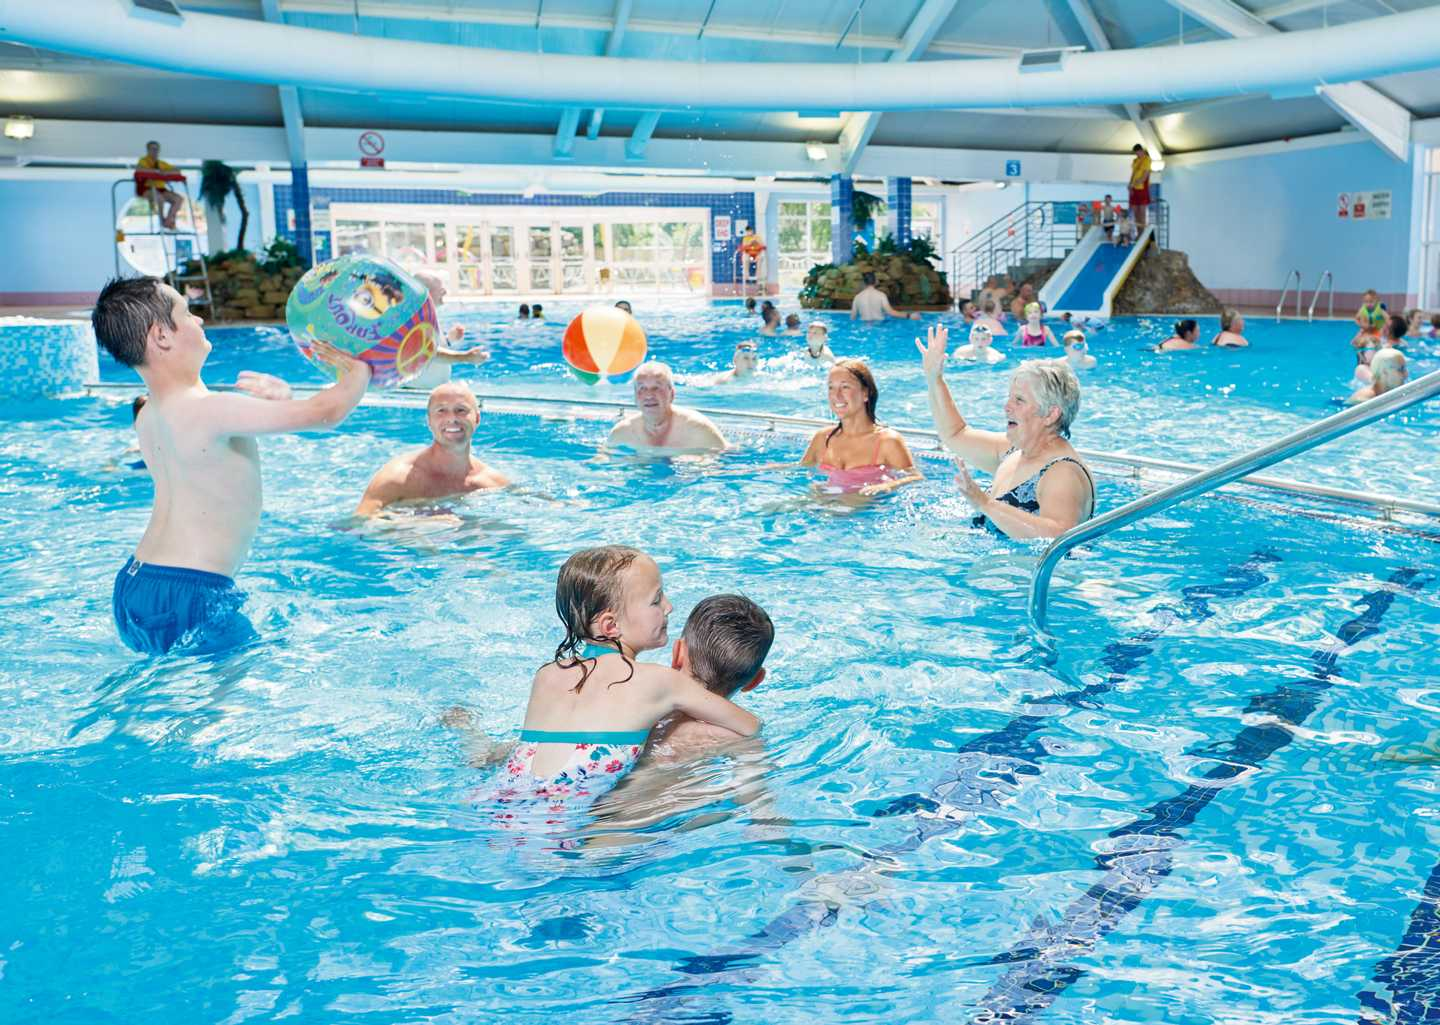 Guests splashing about in the heated indoor pool